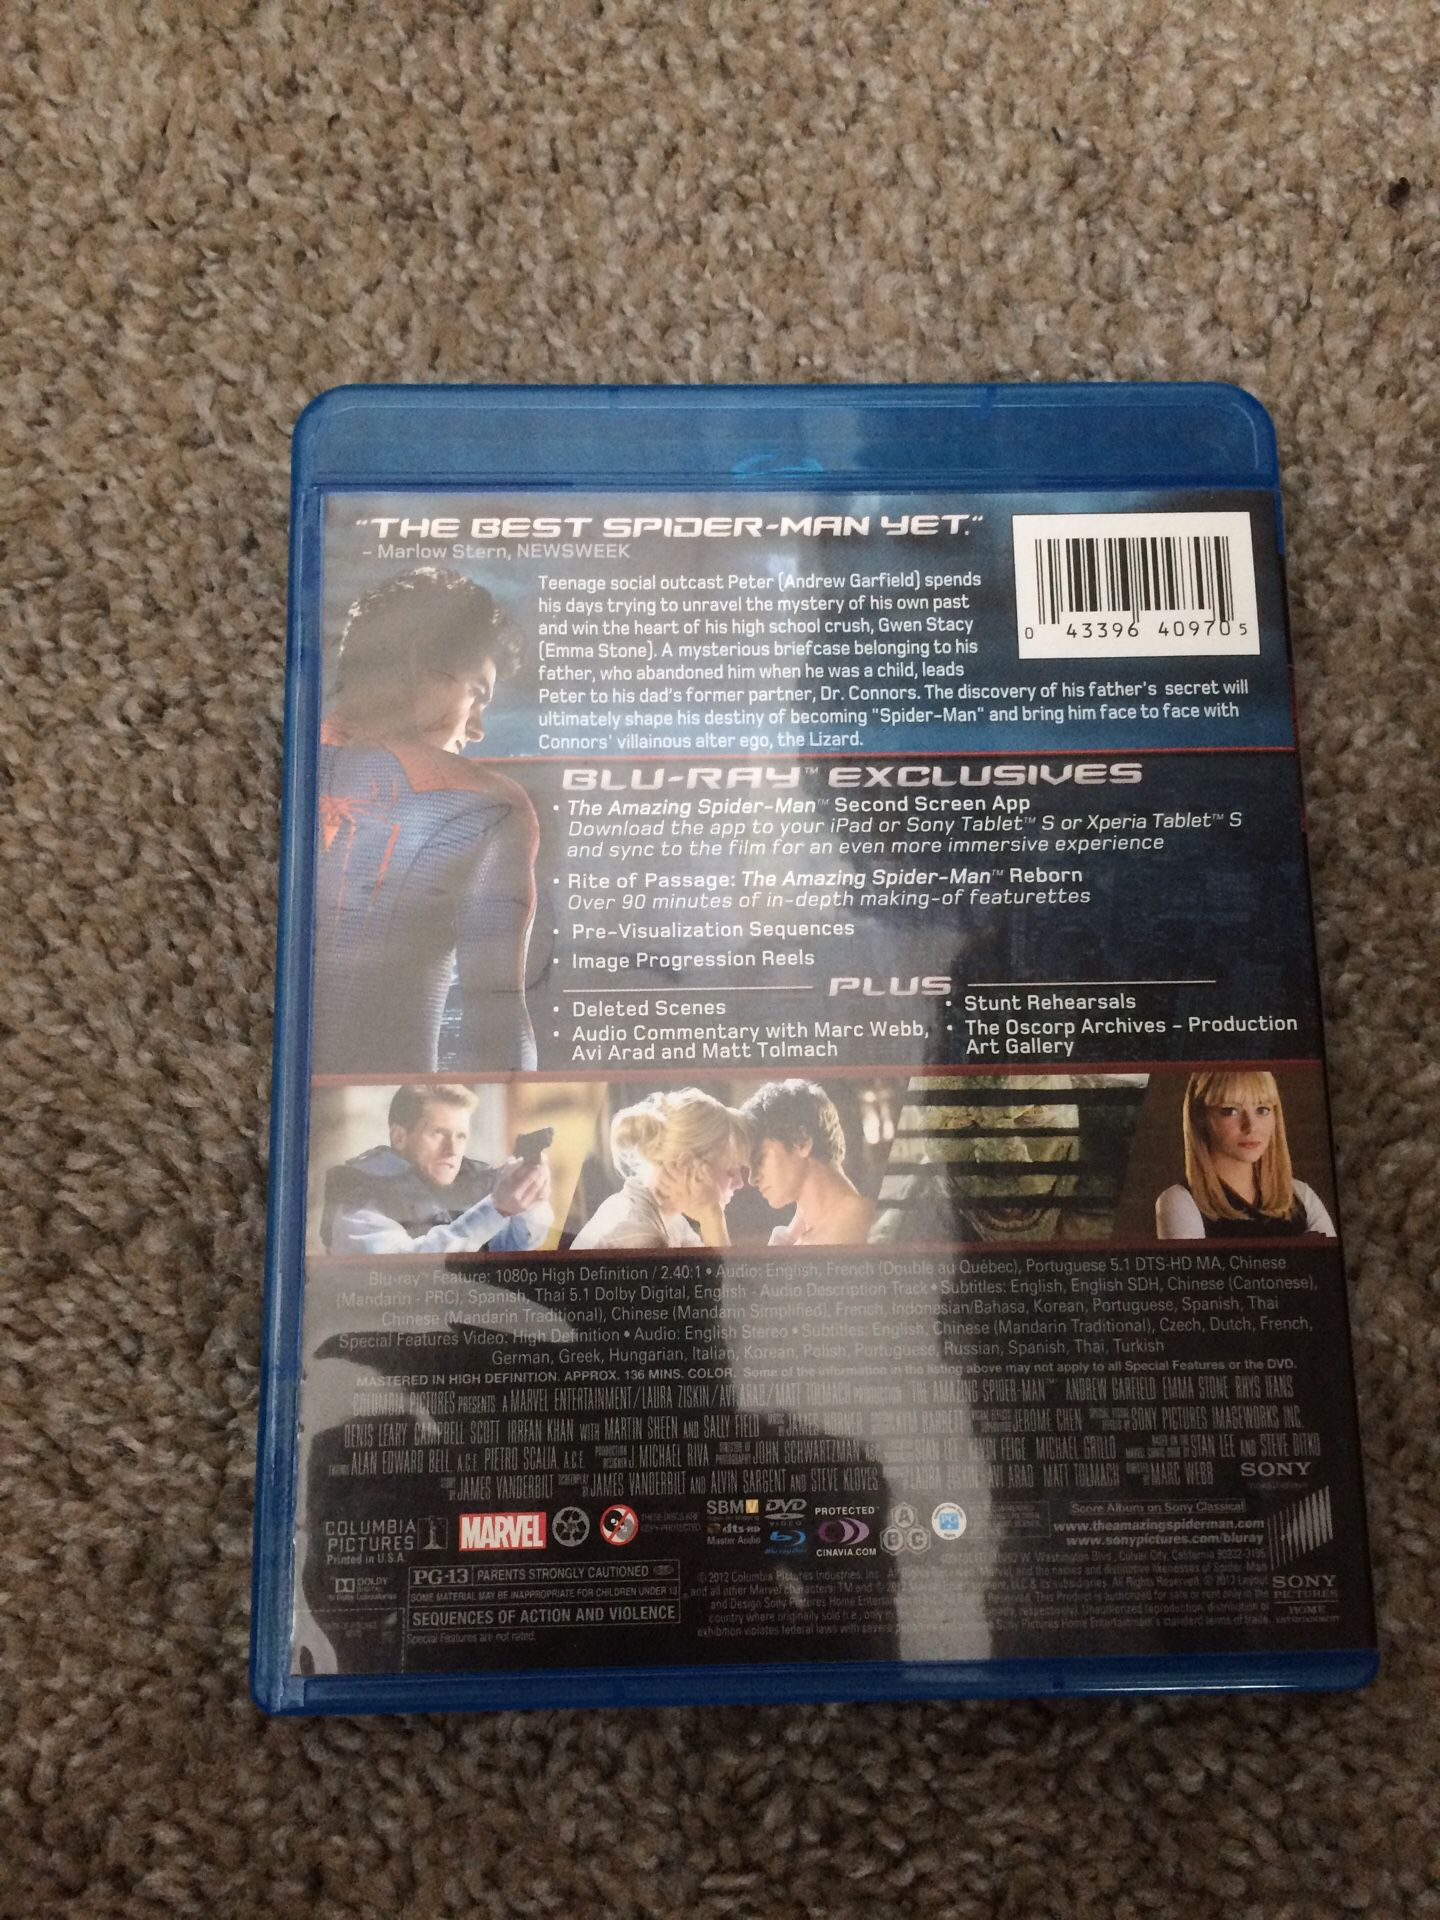 The amazing Spider-Man 3disc for Blu-ray